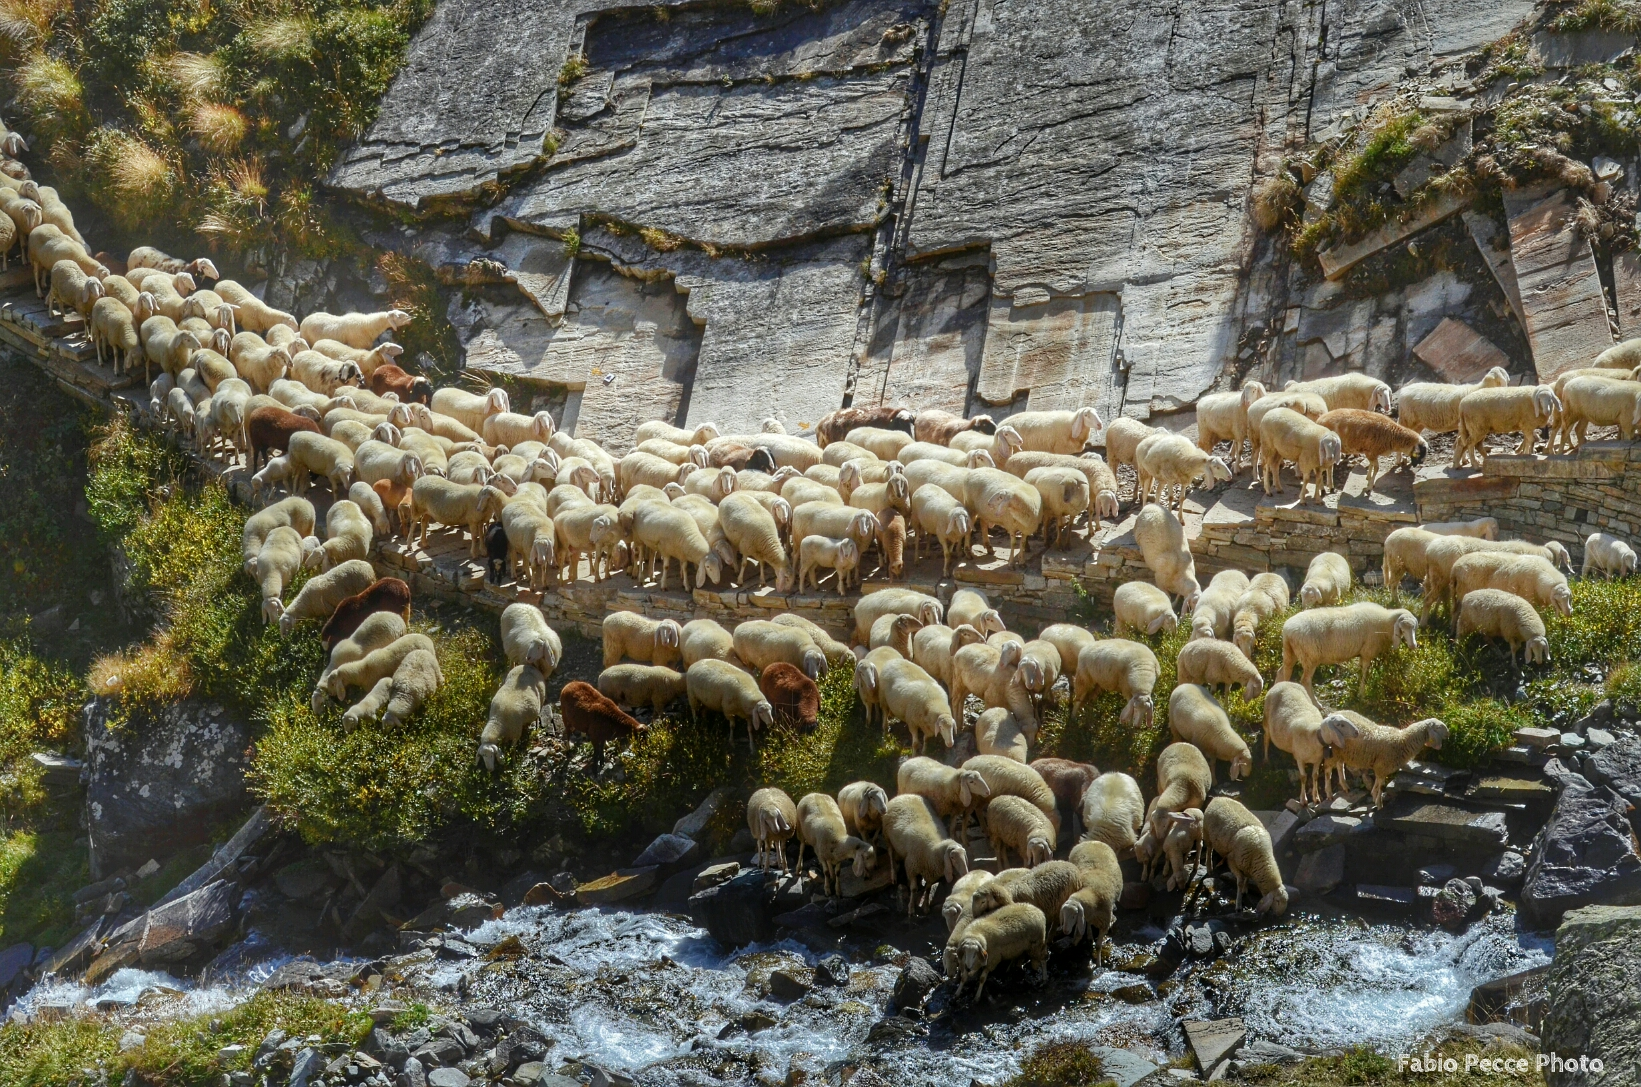 a river of sheep....